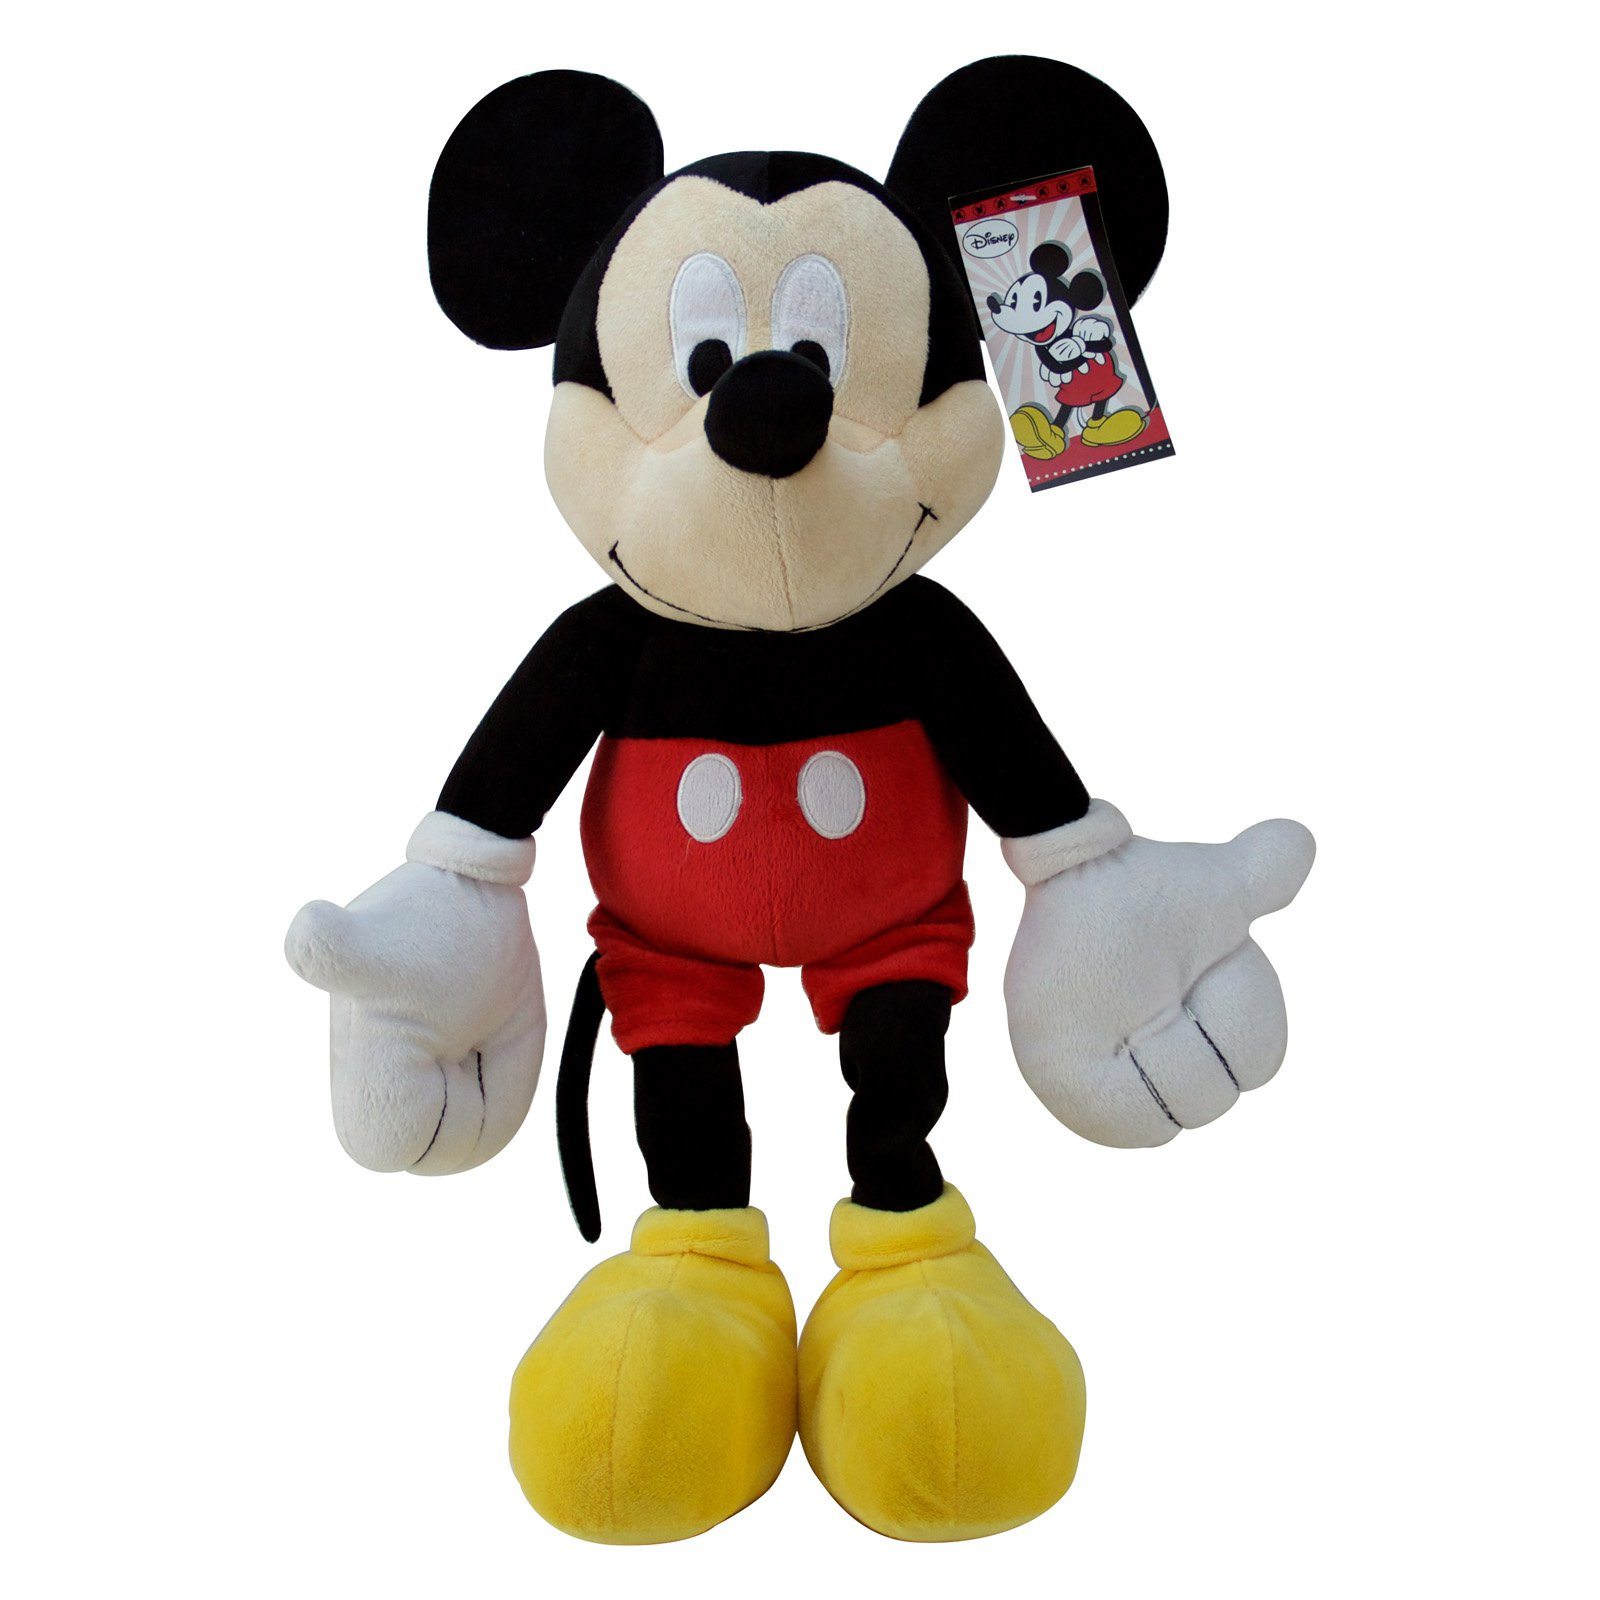 Disney Mickey Classic Plush Pillow Buddy - 15 in.